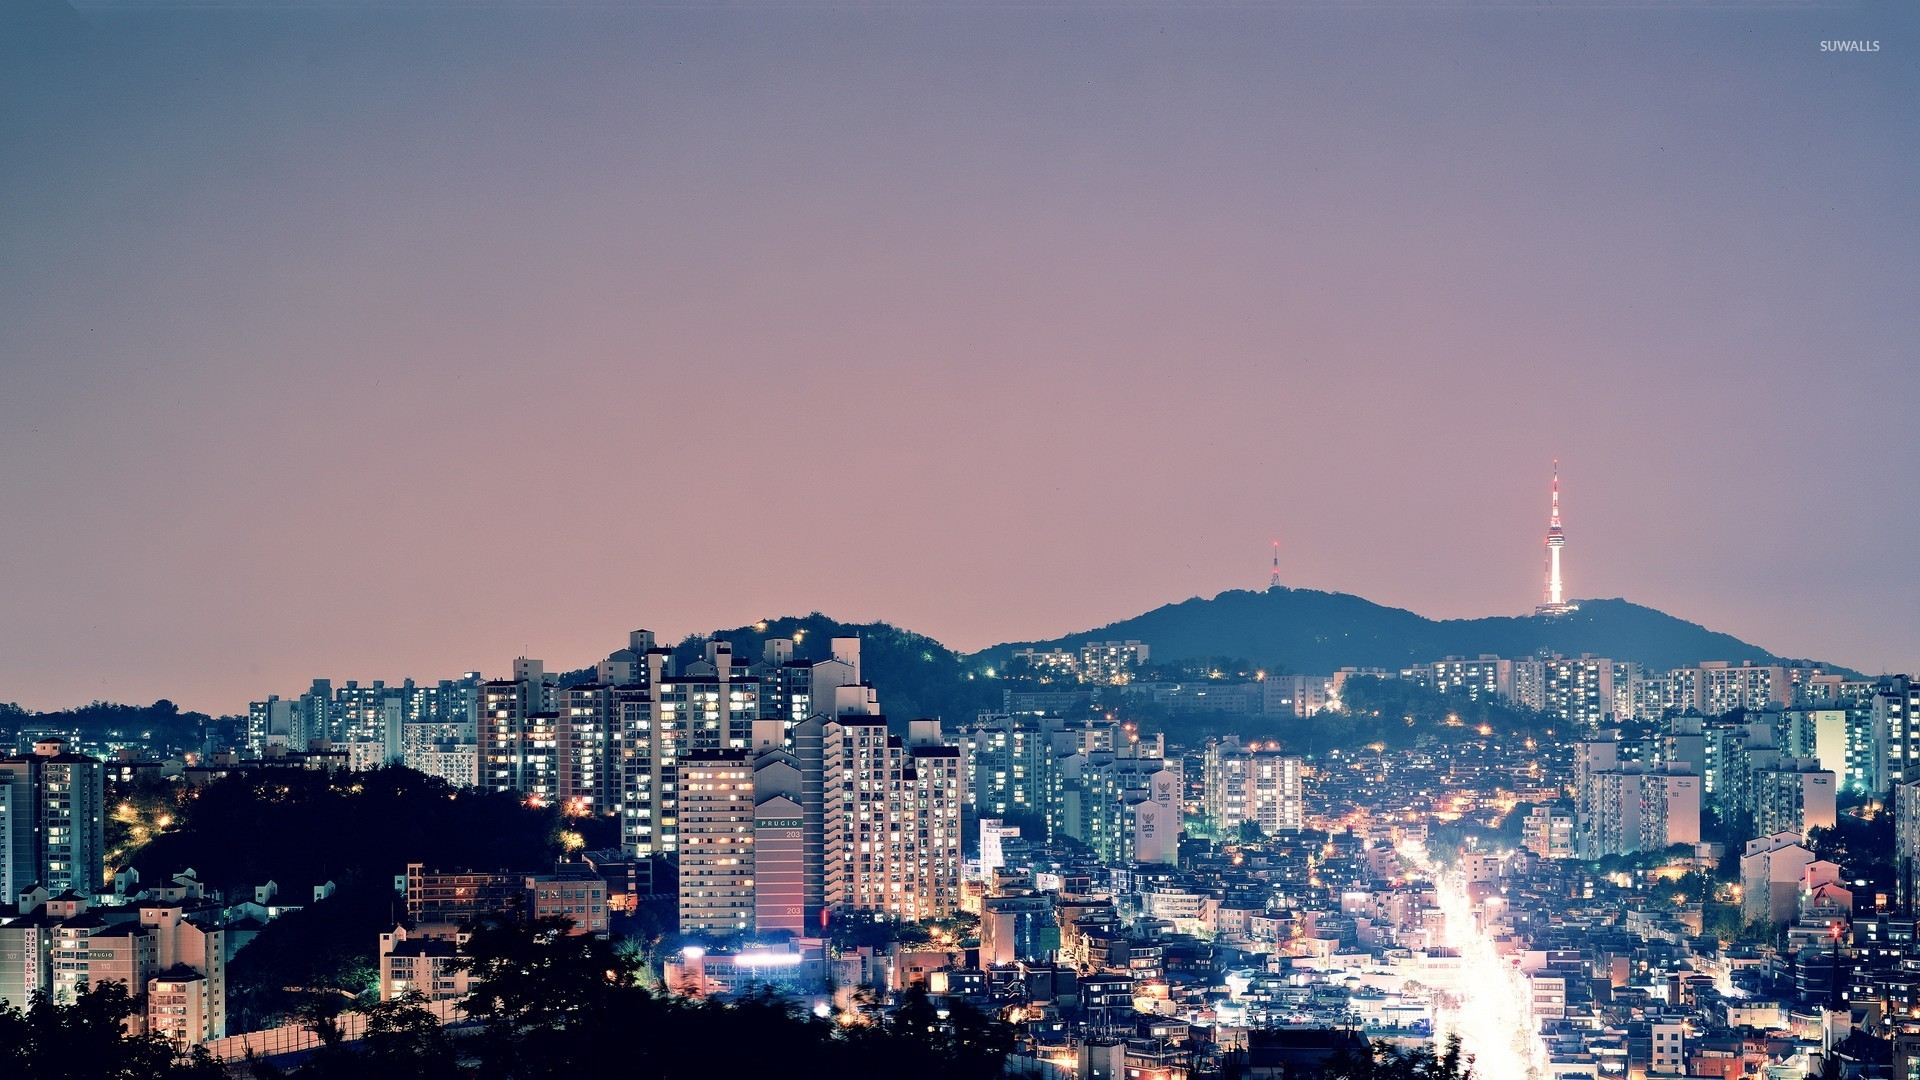 south korea full hd wallpaper 1920x1080